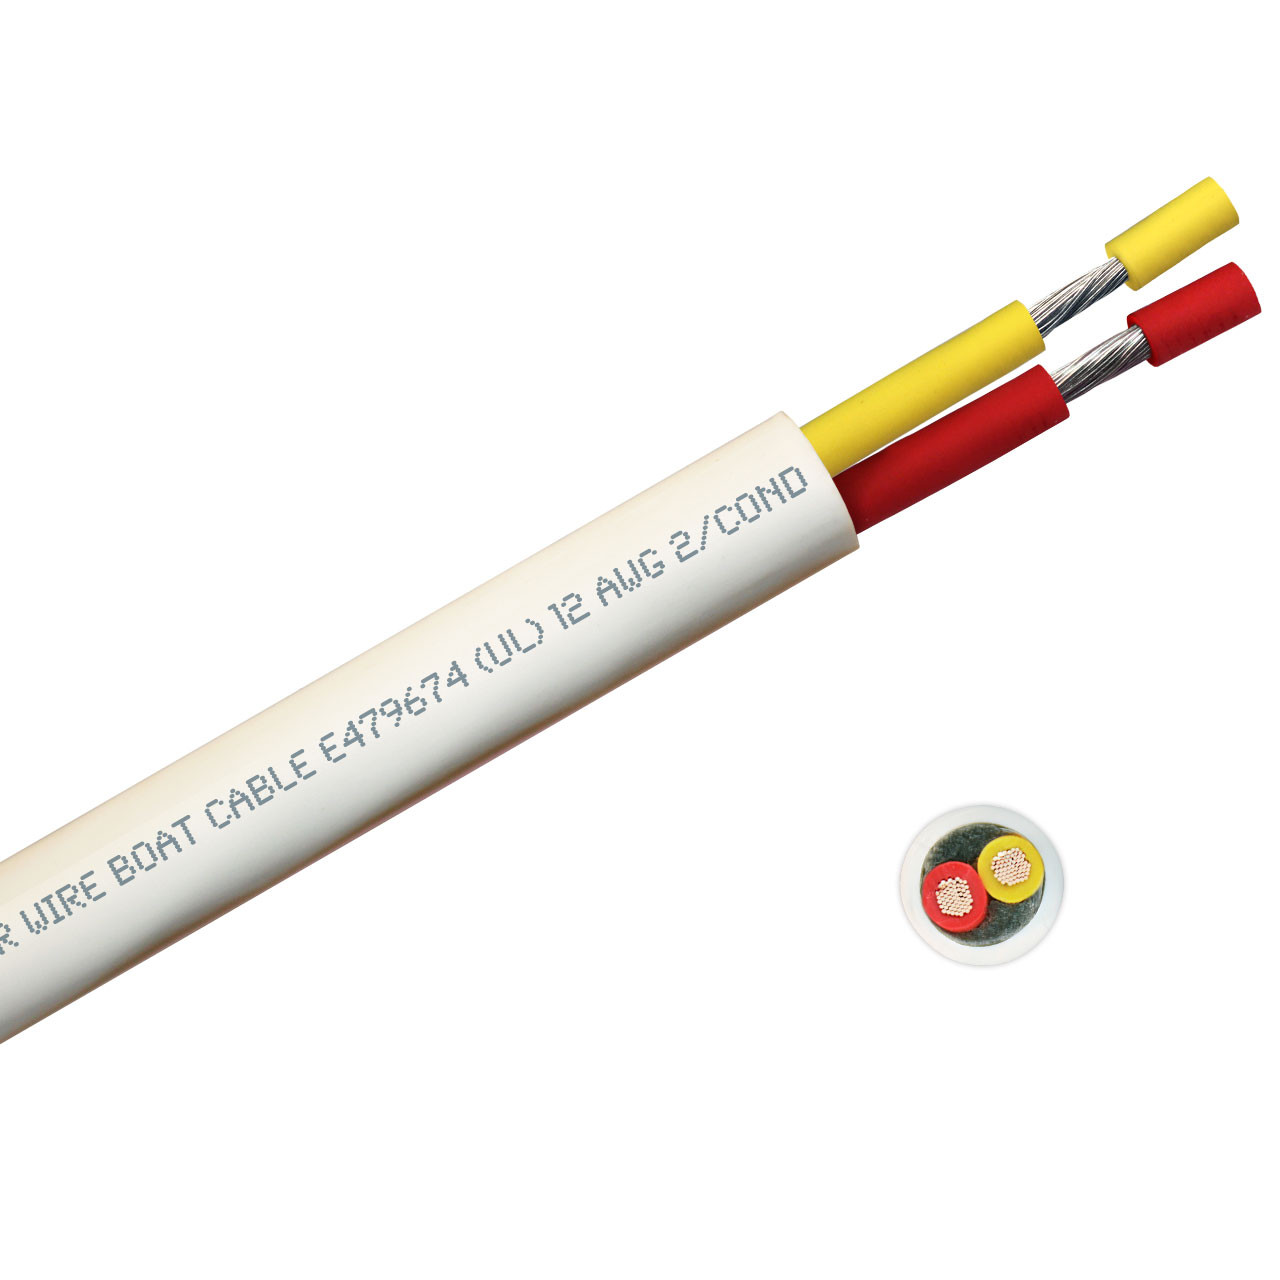 12 AWG ROUND DC DUPLEX BOAT CABLE 100 FT SPOOL YELLOW/RED